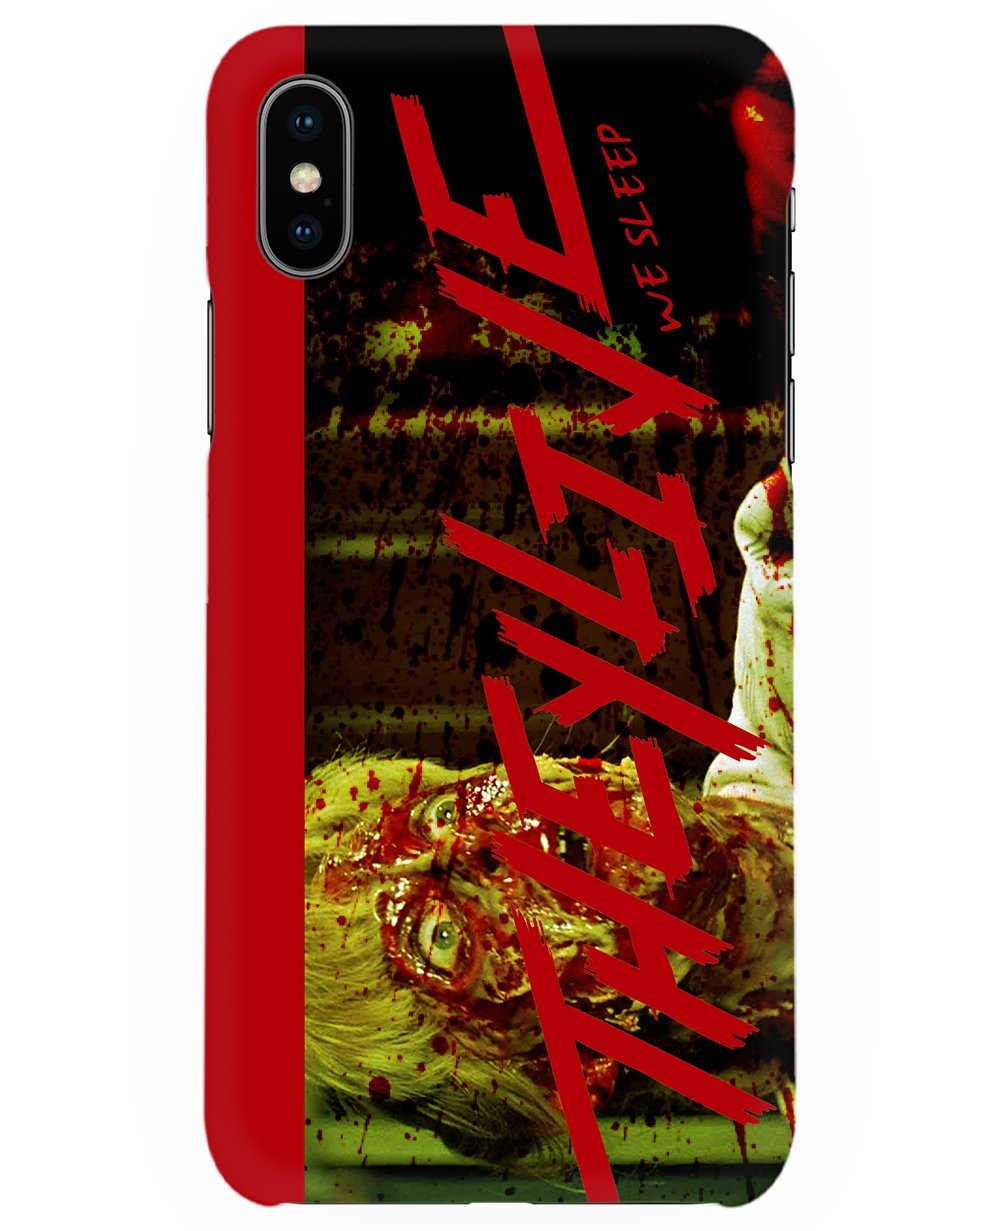 Prince Of Darkness Print Iphone Case - Phone cases - THEYLIVE - BRANMA